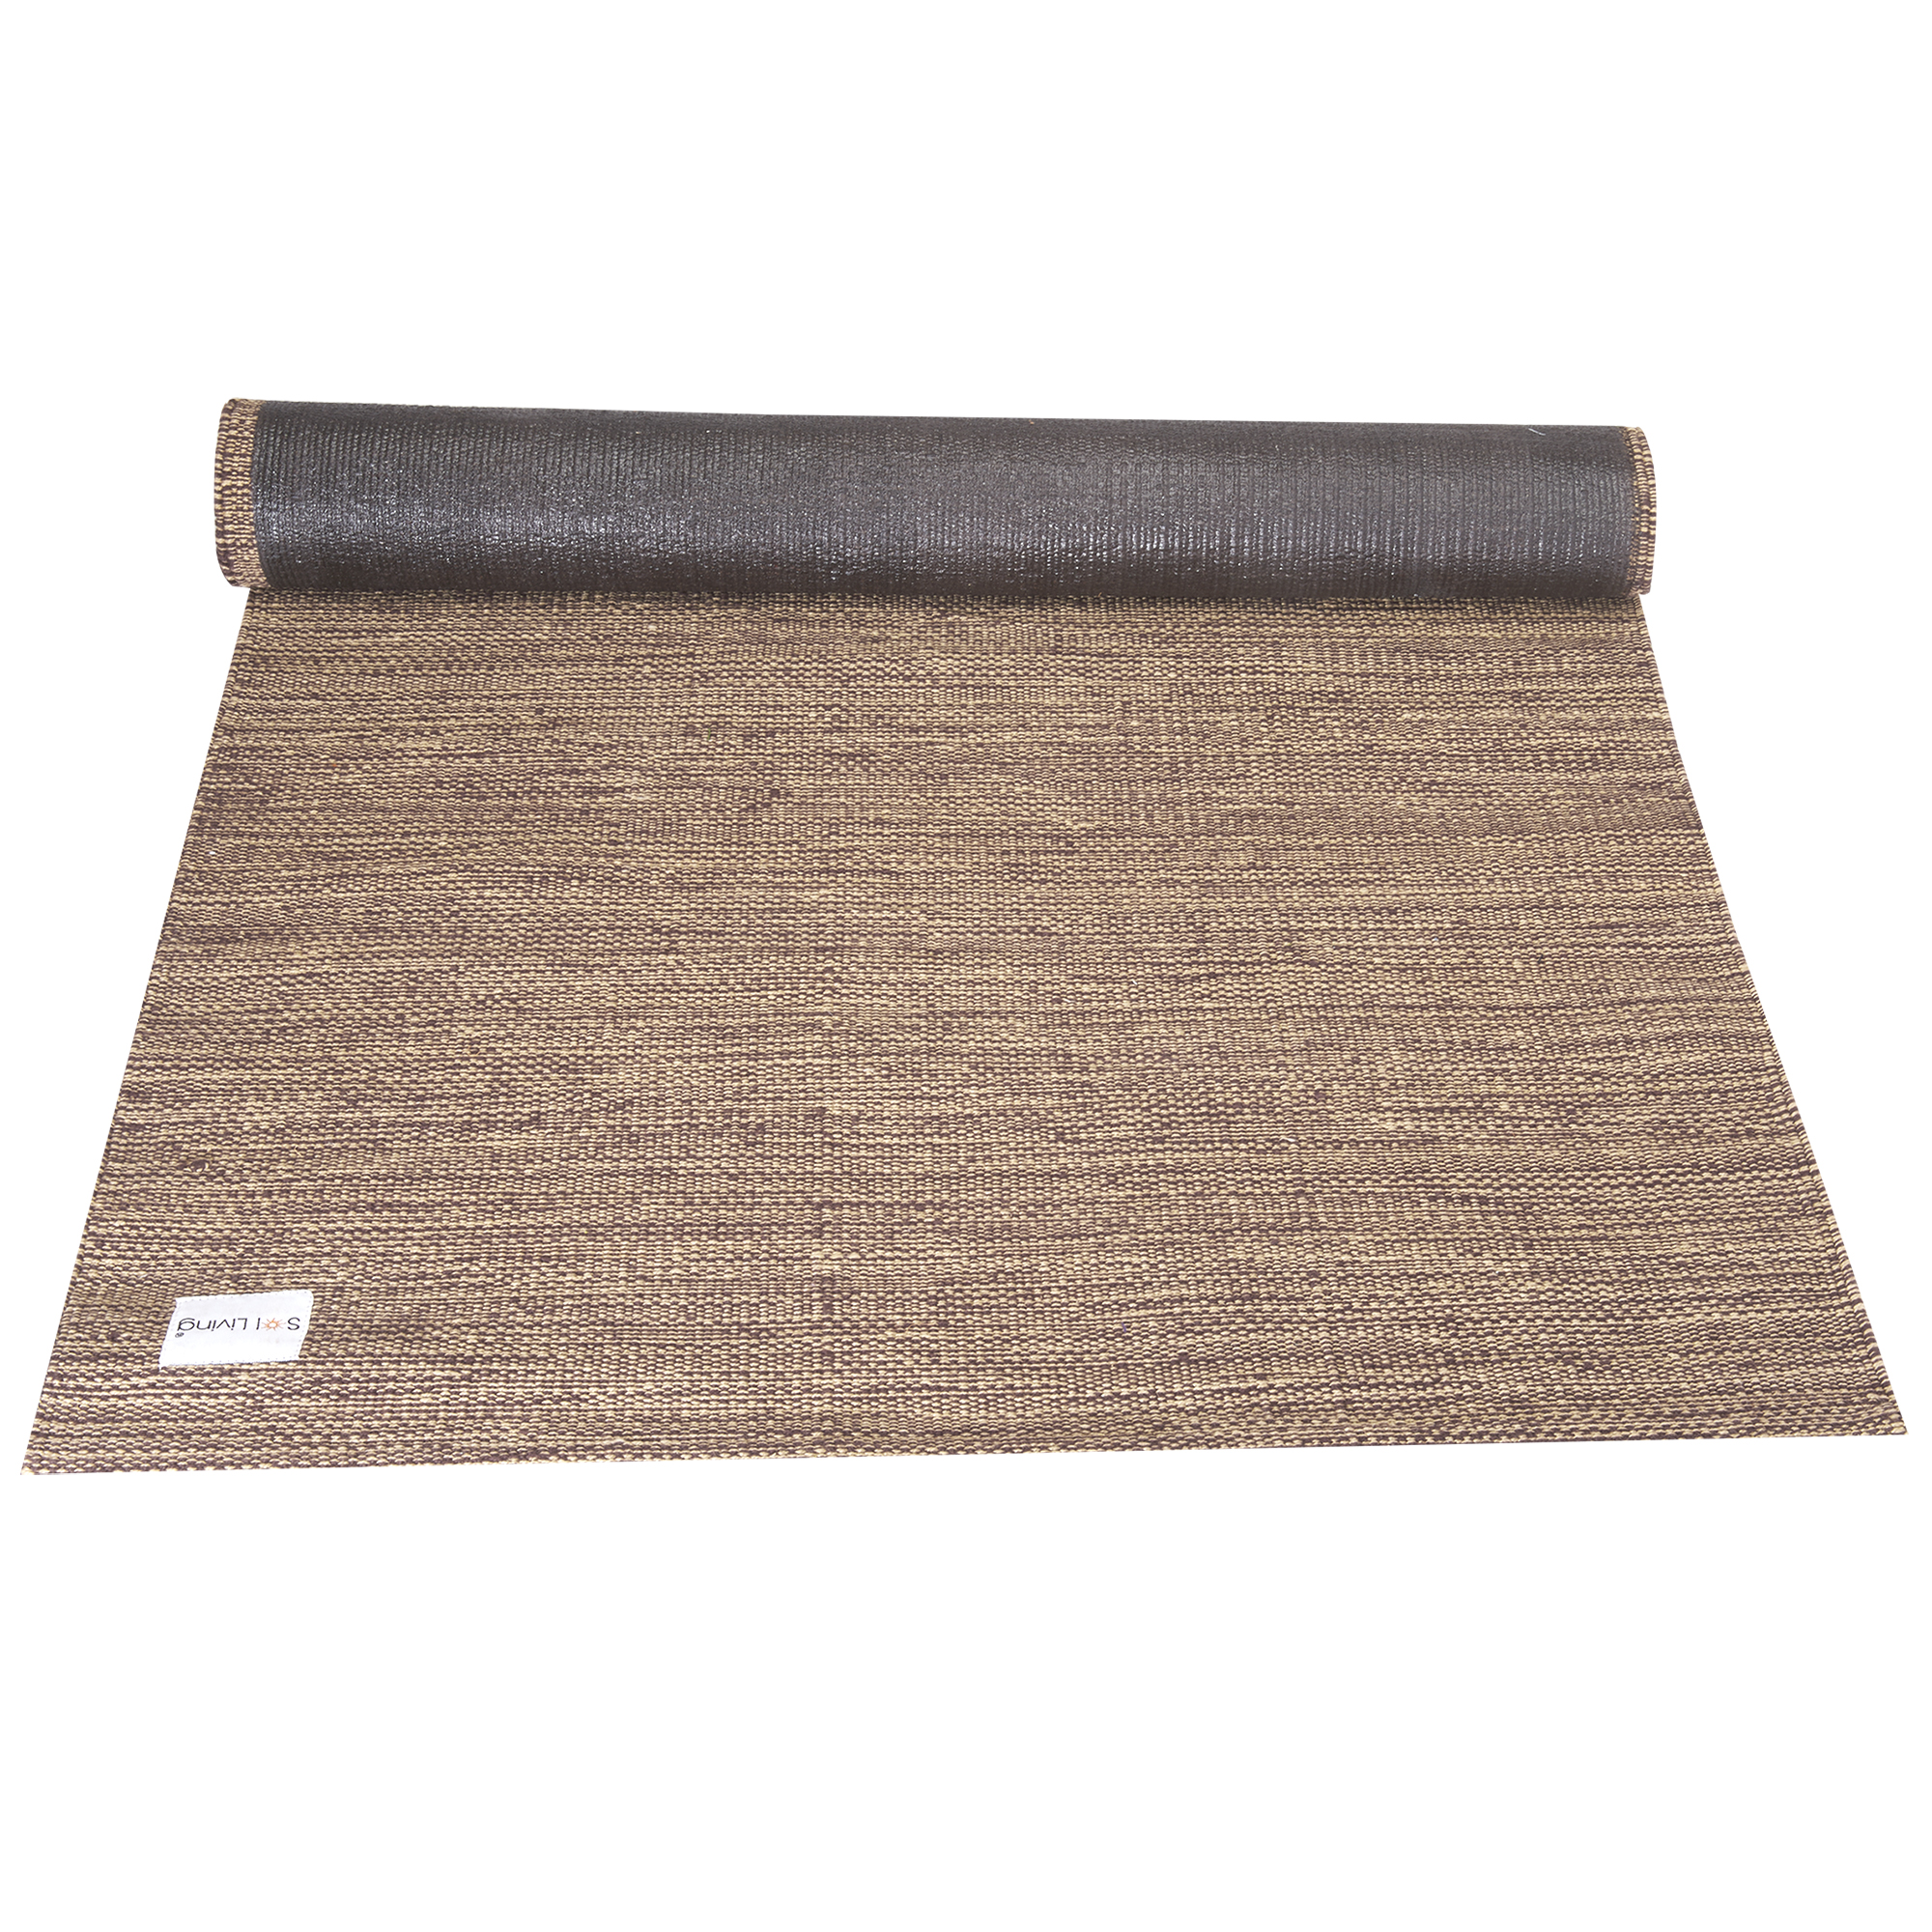 Sol Living Organic Cotton Yoga Mat Non-Slip Odor Free Yoga Rug Eco-Friendly Multi-Purpose Yoga Equipment Fitness Mat Mediation Pad 24 x 72 Inches Brown